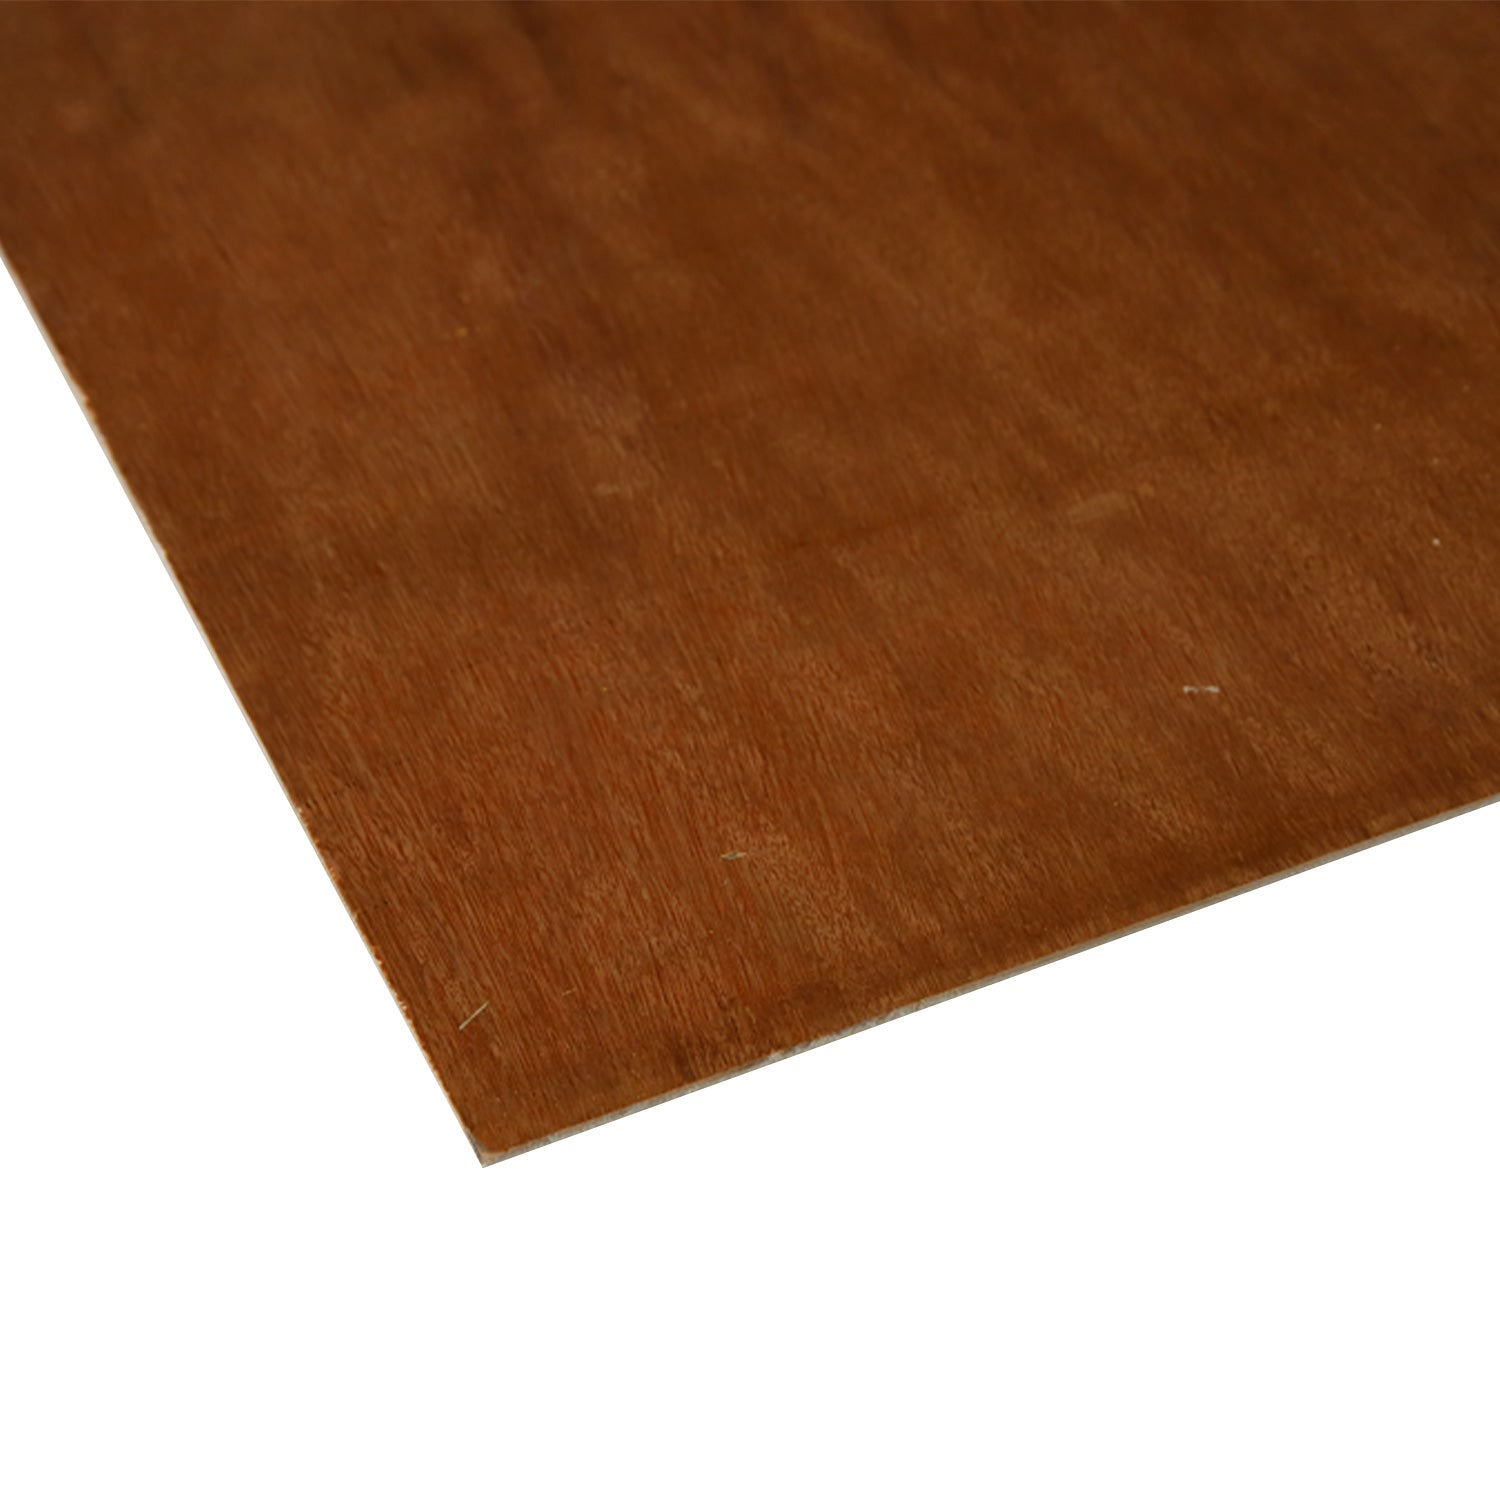 Finish Ply (Hardwood) 8' x 4' x 4mm